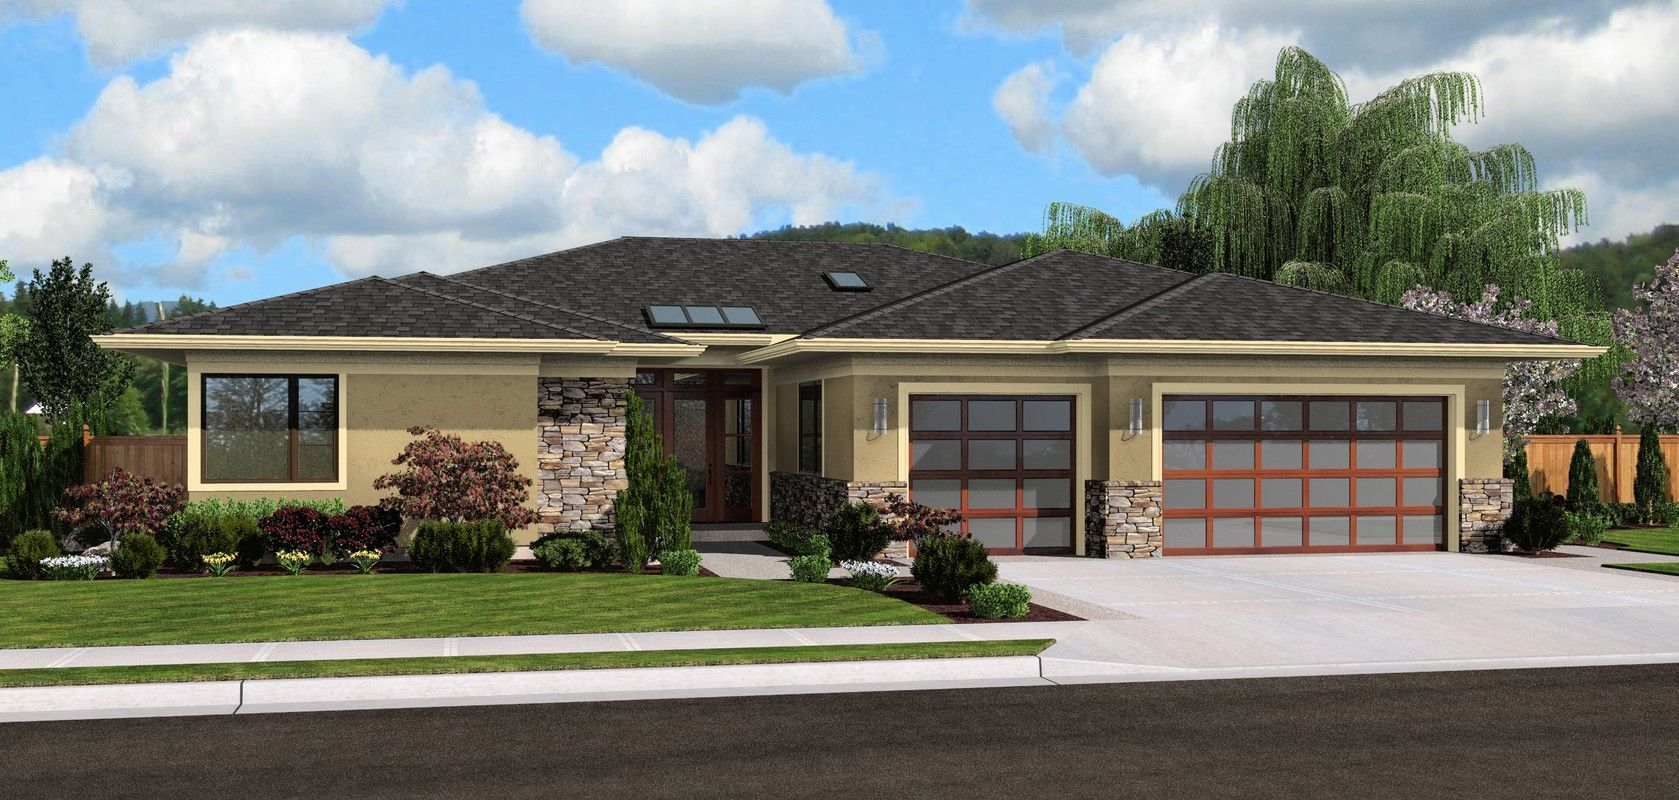 Mascord plan 1245 the riverside printed the home for Contemporary ranch house plans